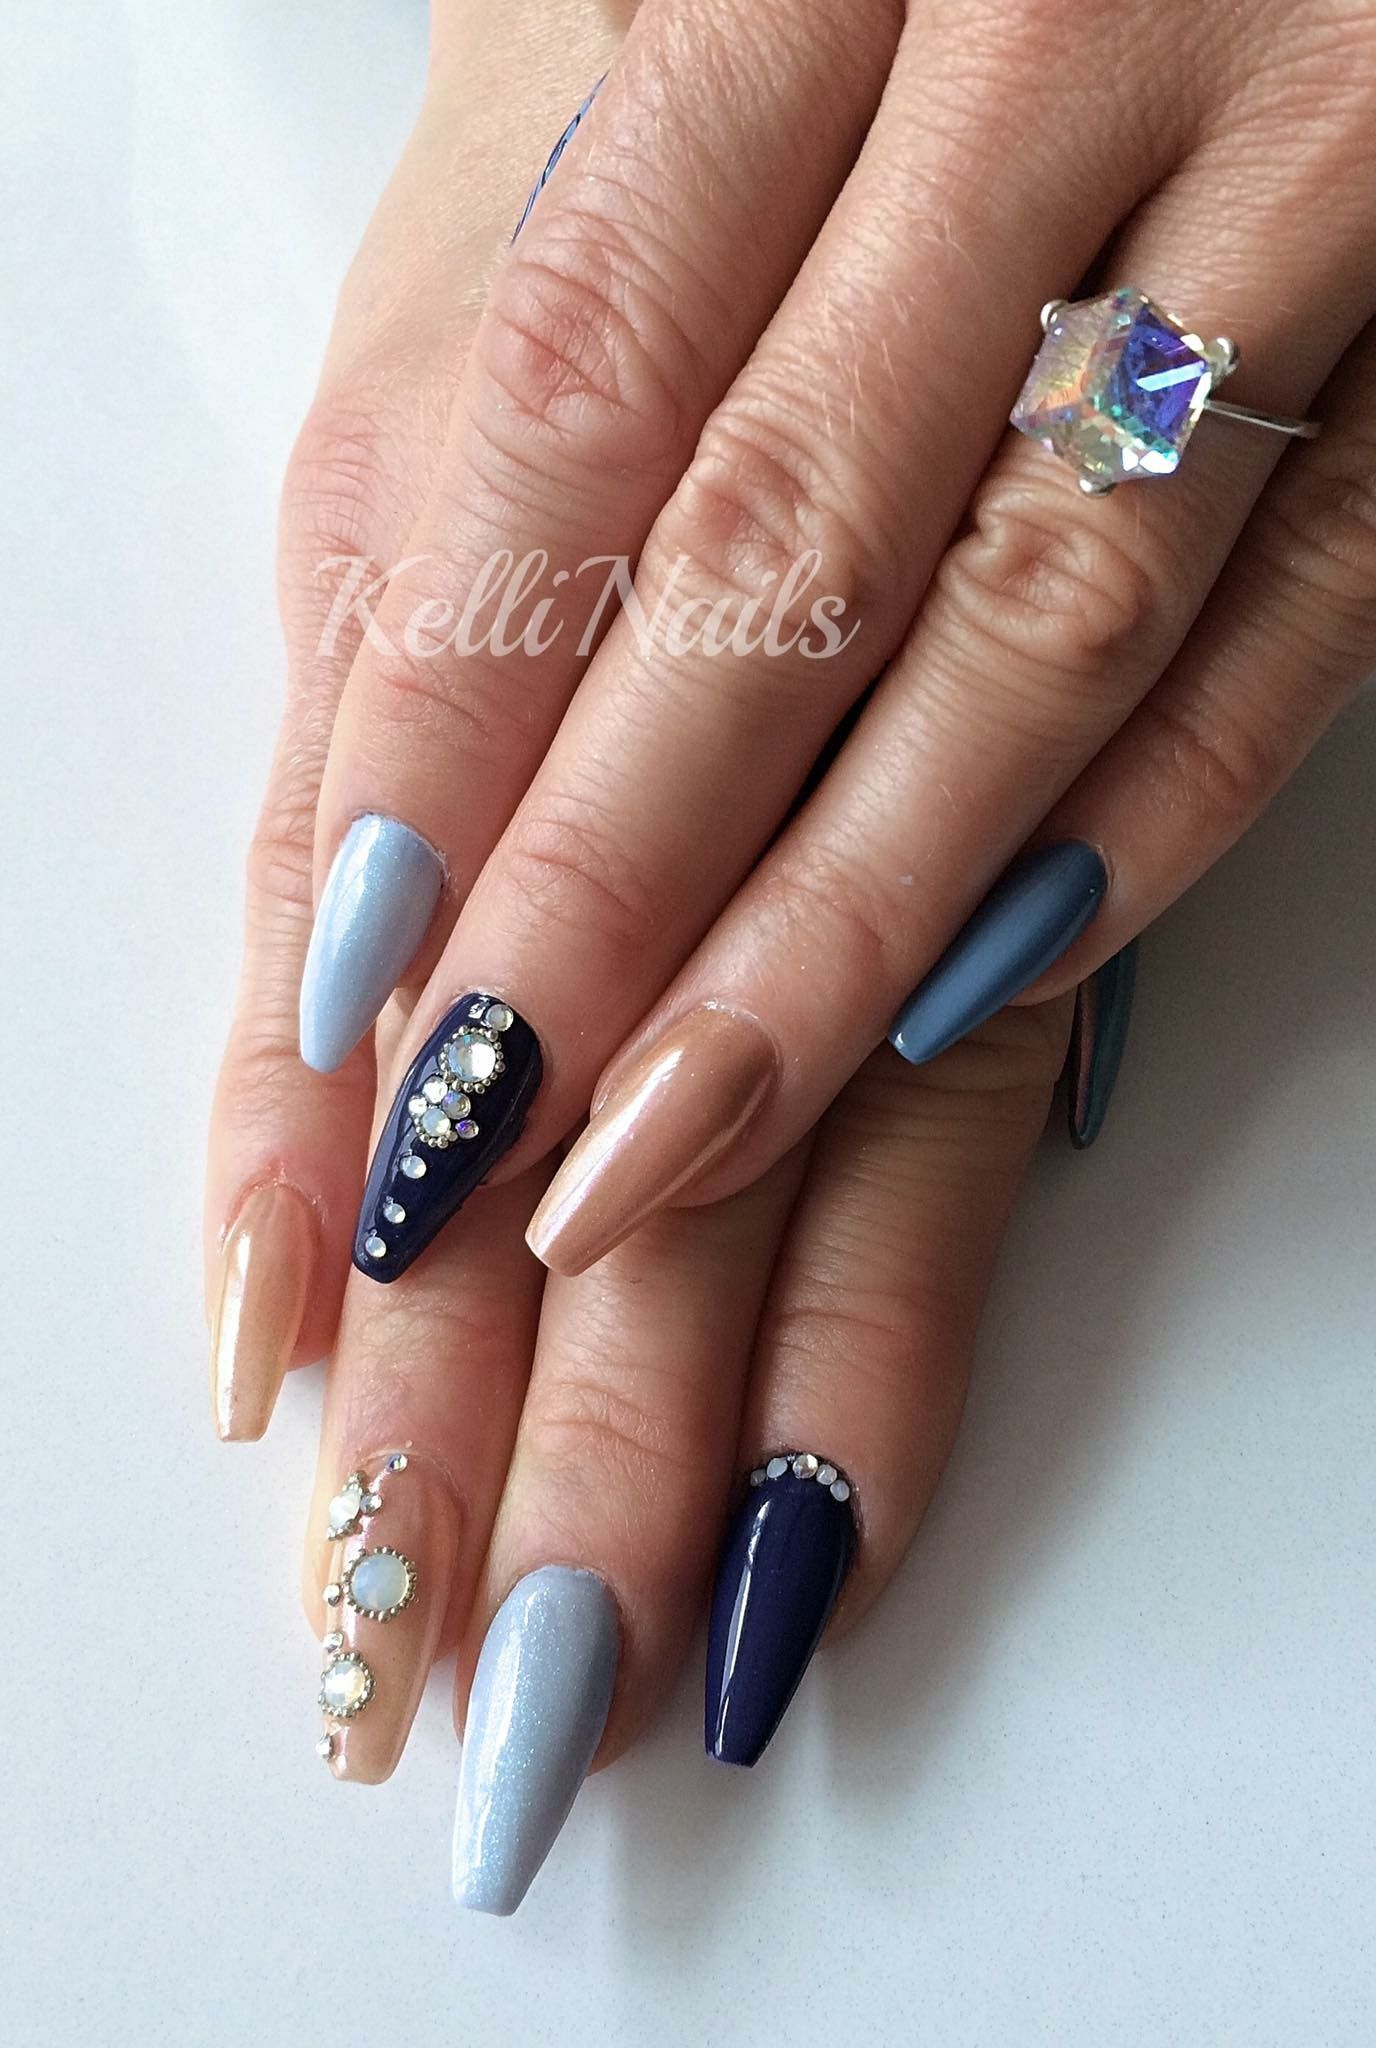 Nageldesign Strasssteine Coffin Nails Ballerina Nägel In Dunkel Und Hell Blau Modern